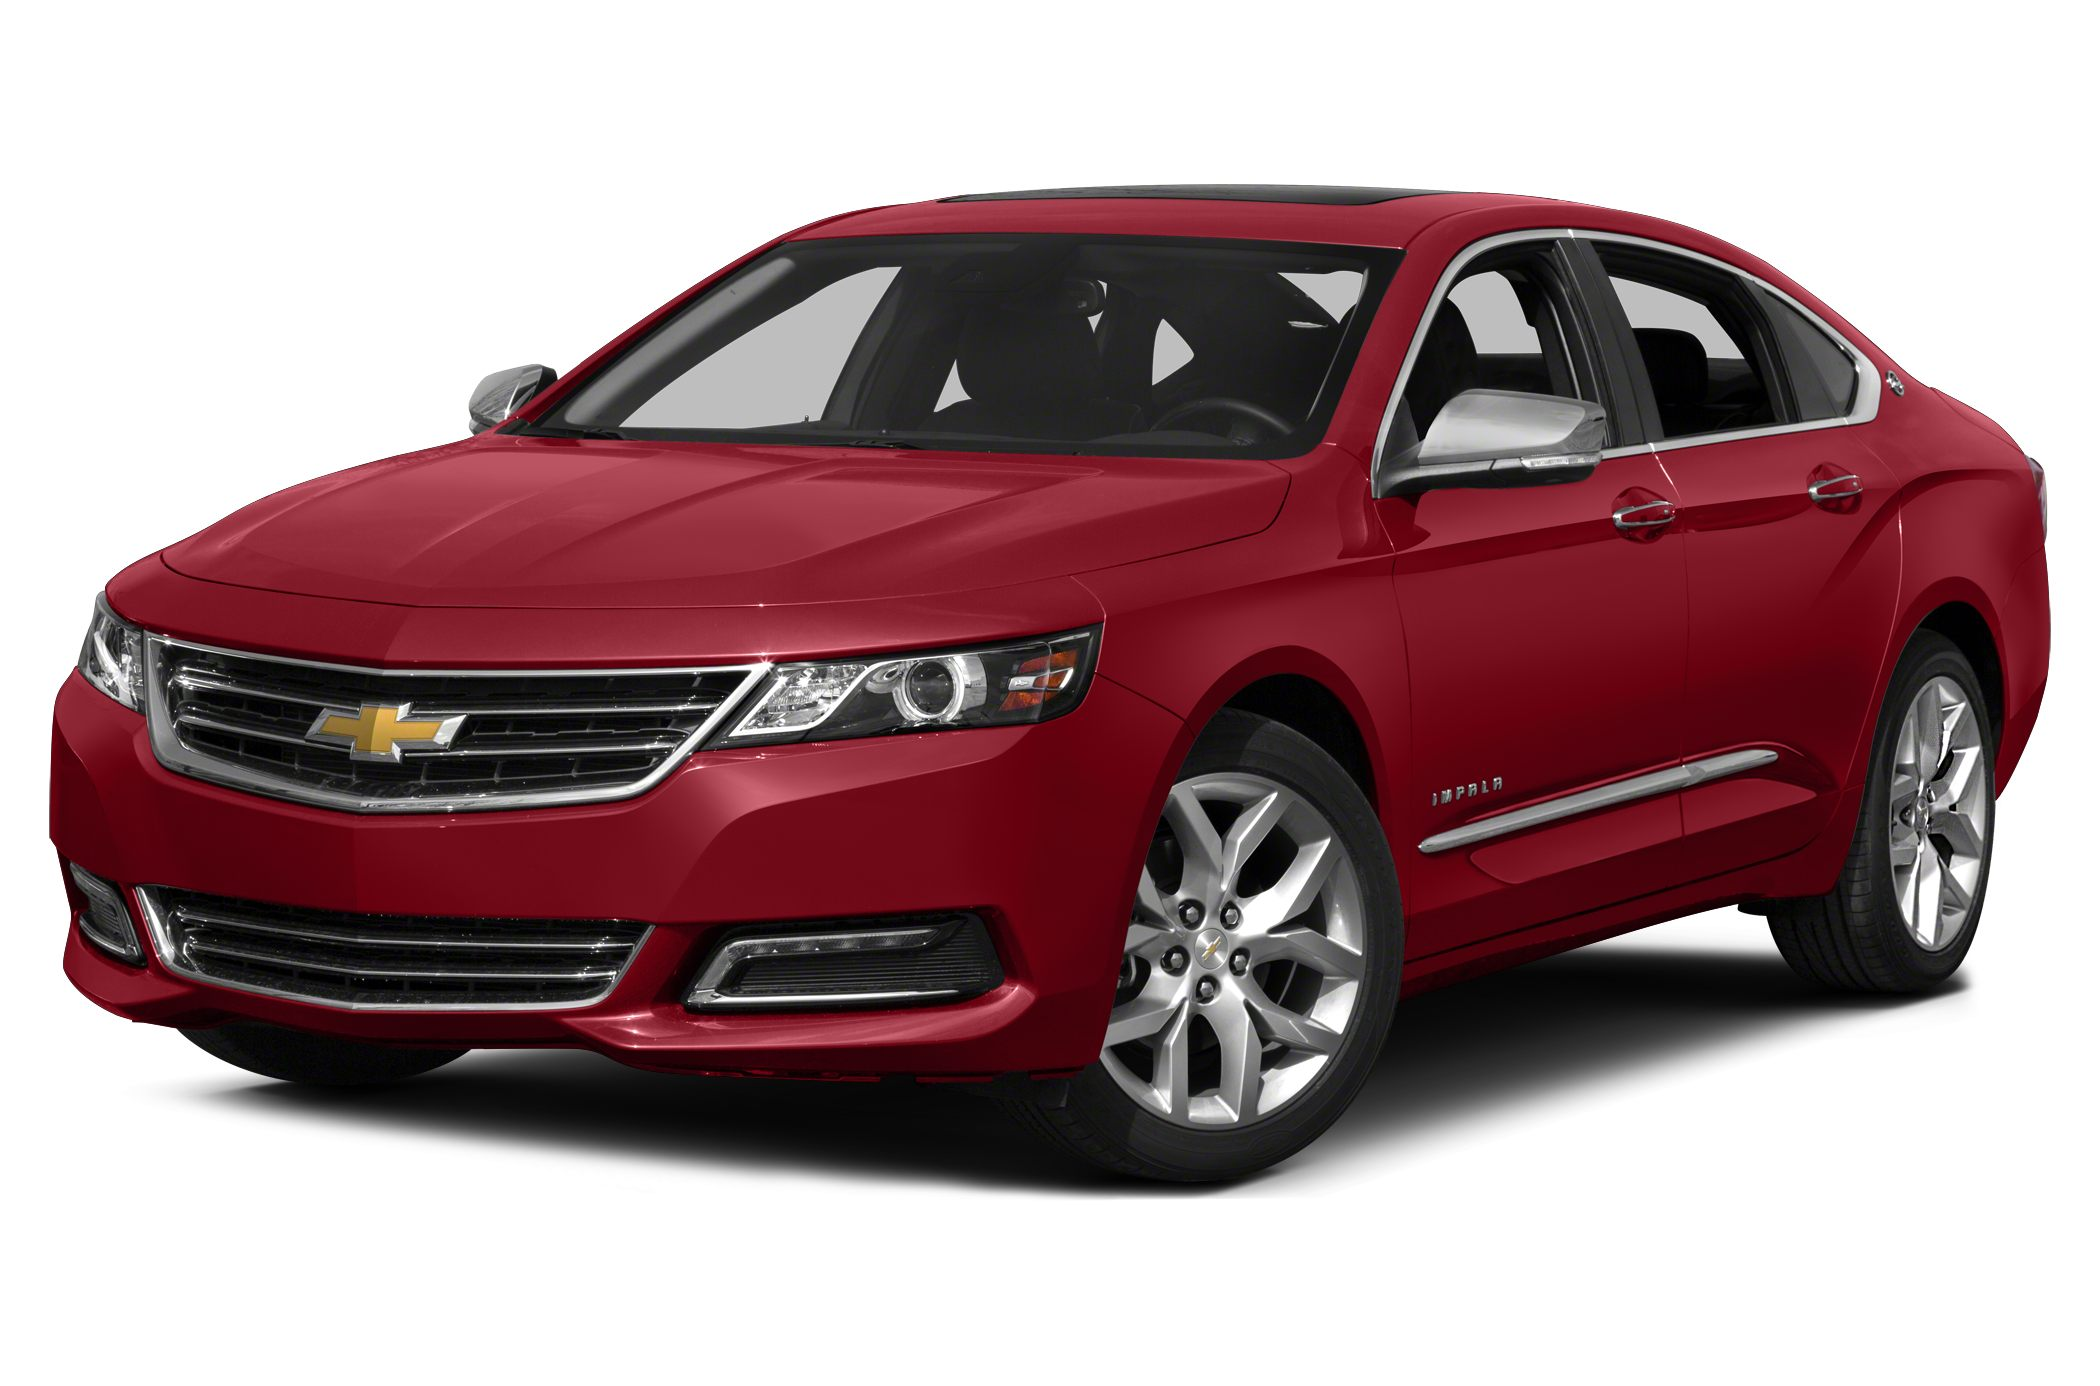 2015 Chevrolet Impala LS Sedan for sale in Franklin for $28,780 with 0 miles.